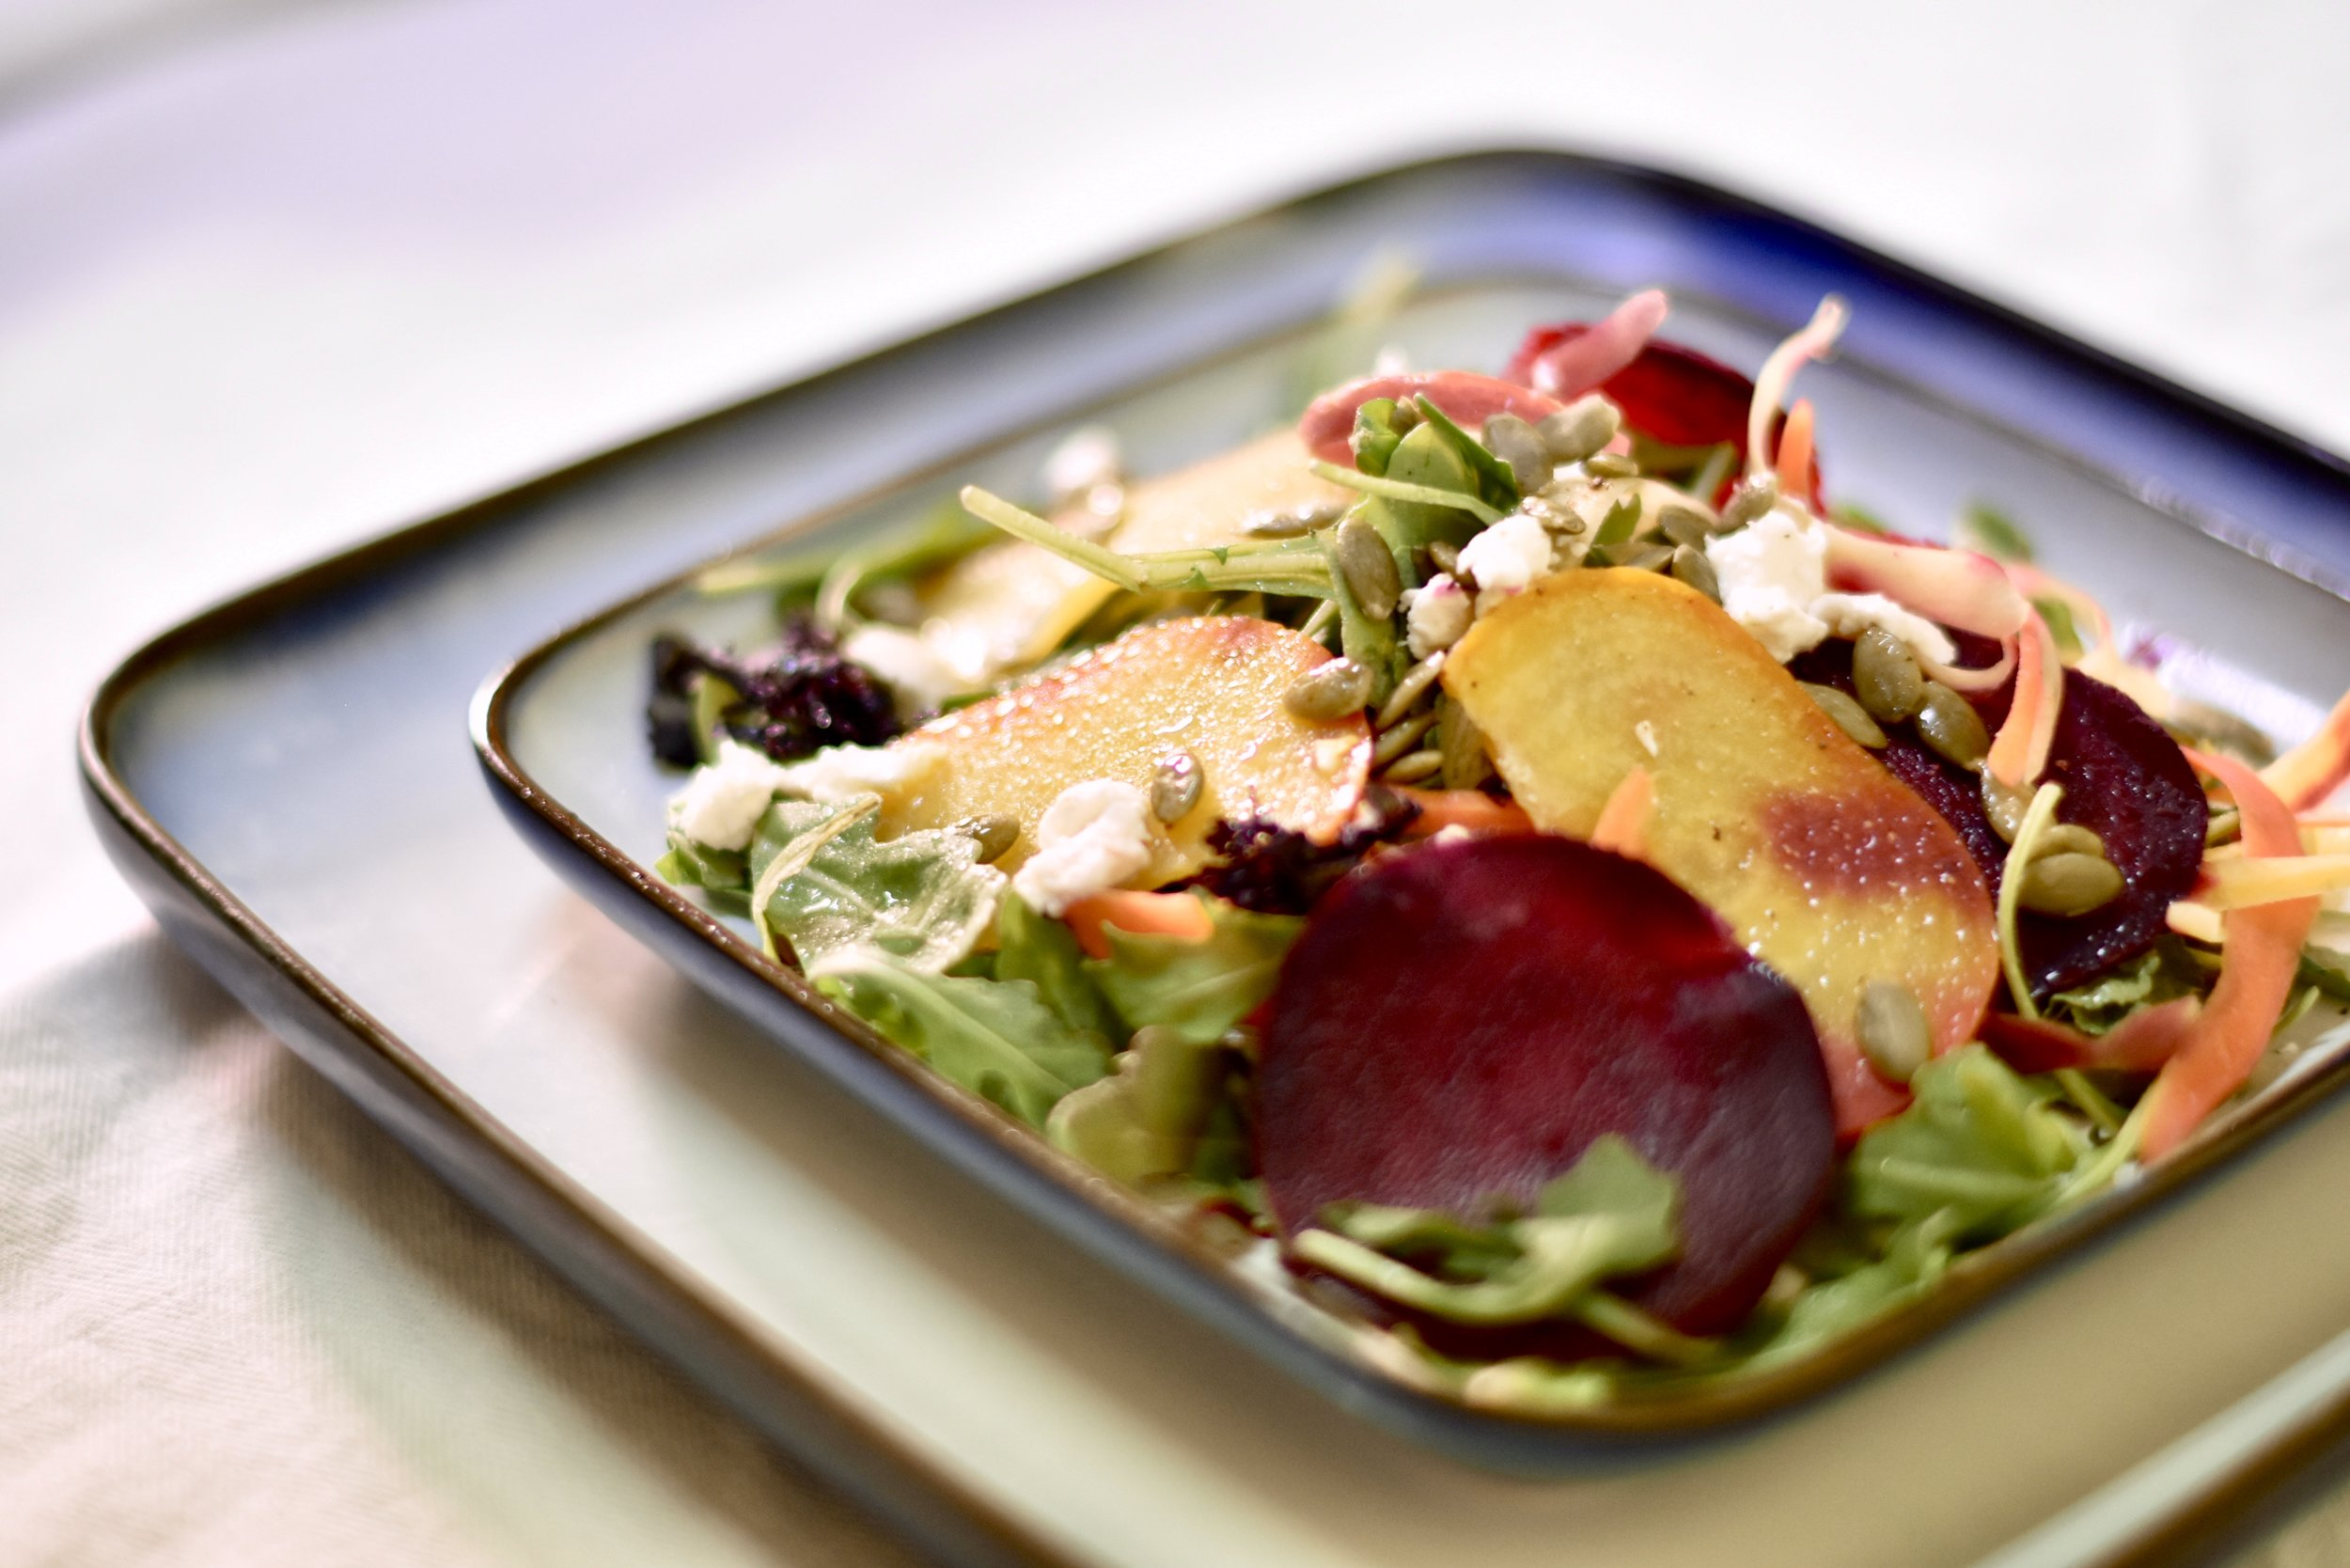 Golden & Red Smashed Beet Salad/Ricotta Salata/Pumpkin Seeds/Crispy Garlic Chips